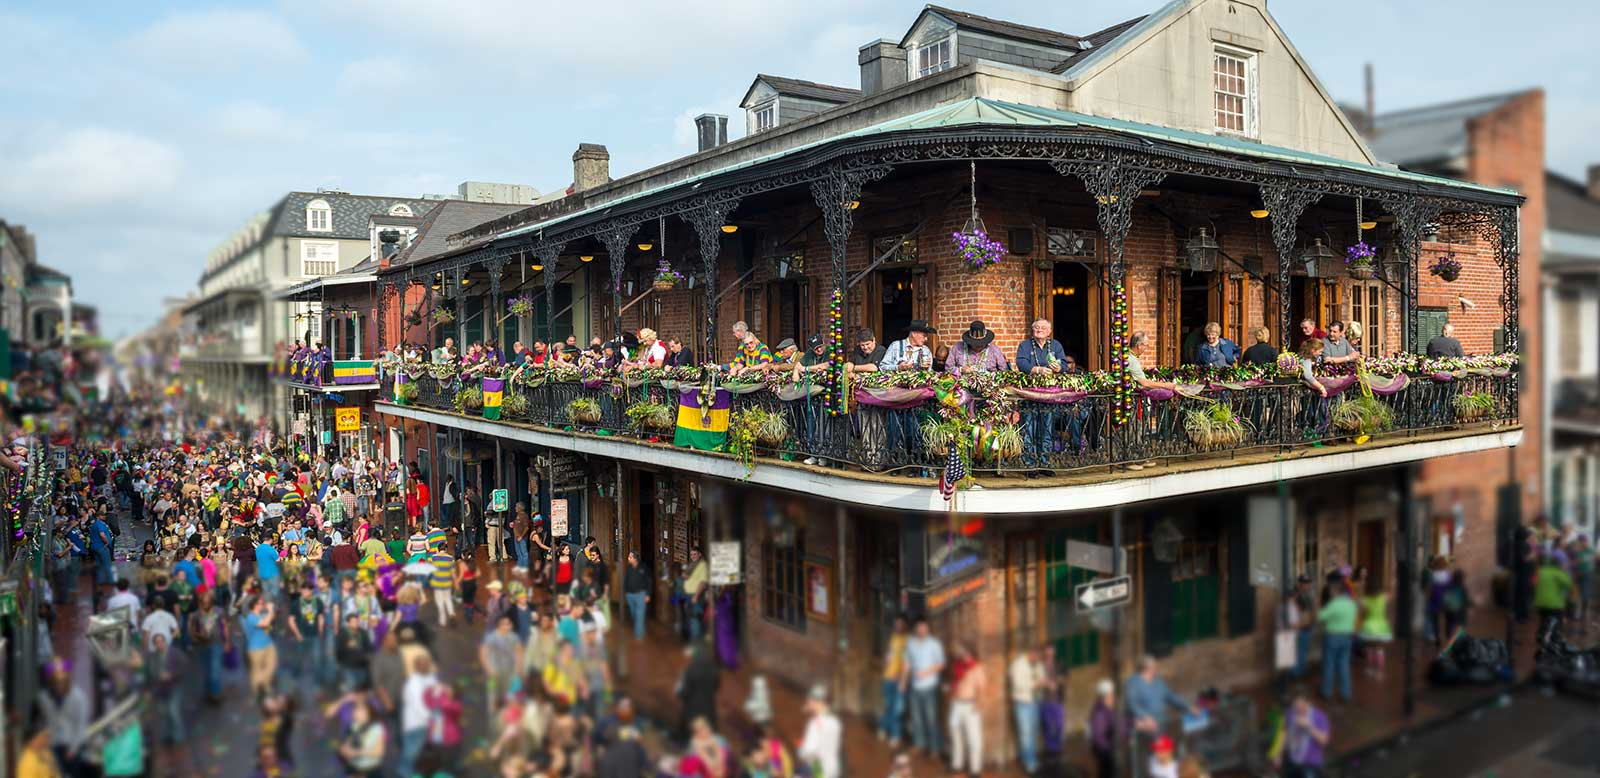 New Orleans Events May 2020.2020 Mardi Gras Parade Schedule Mardi Gras New Orleans